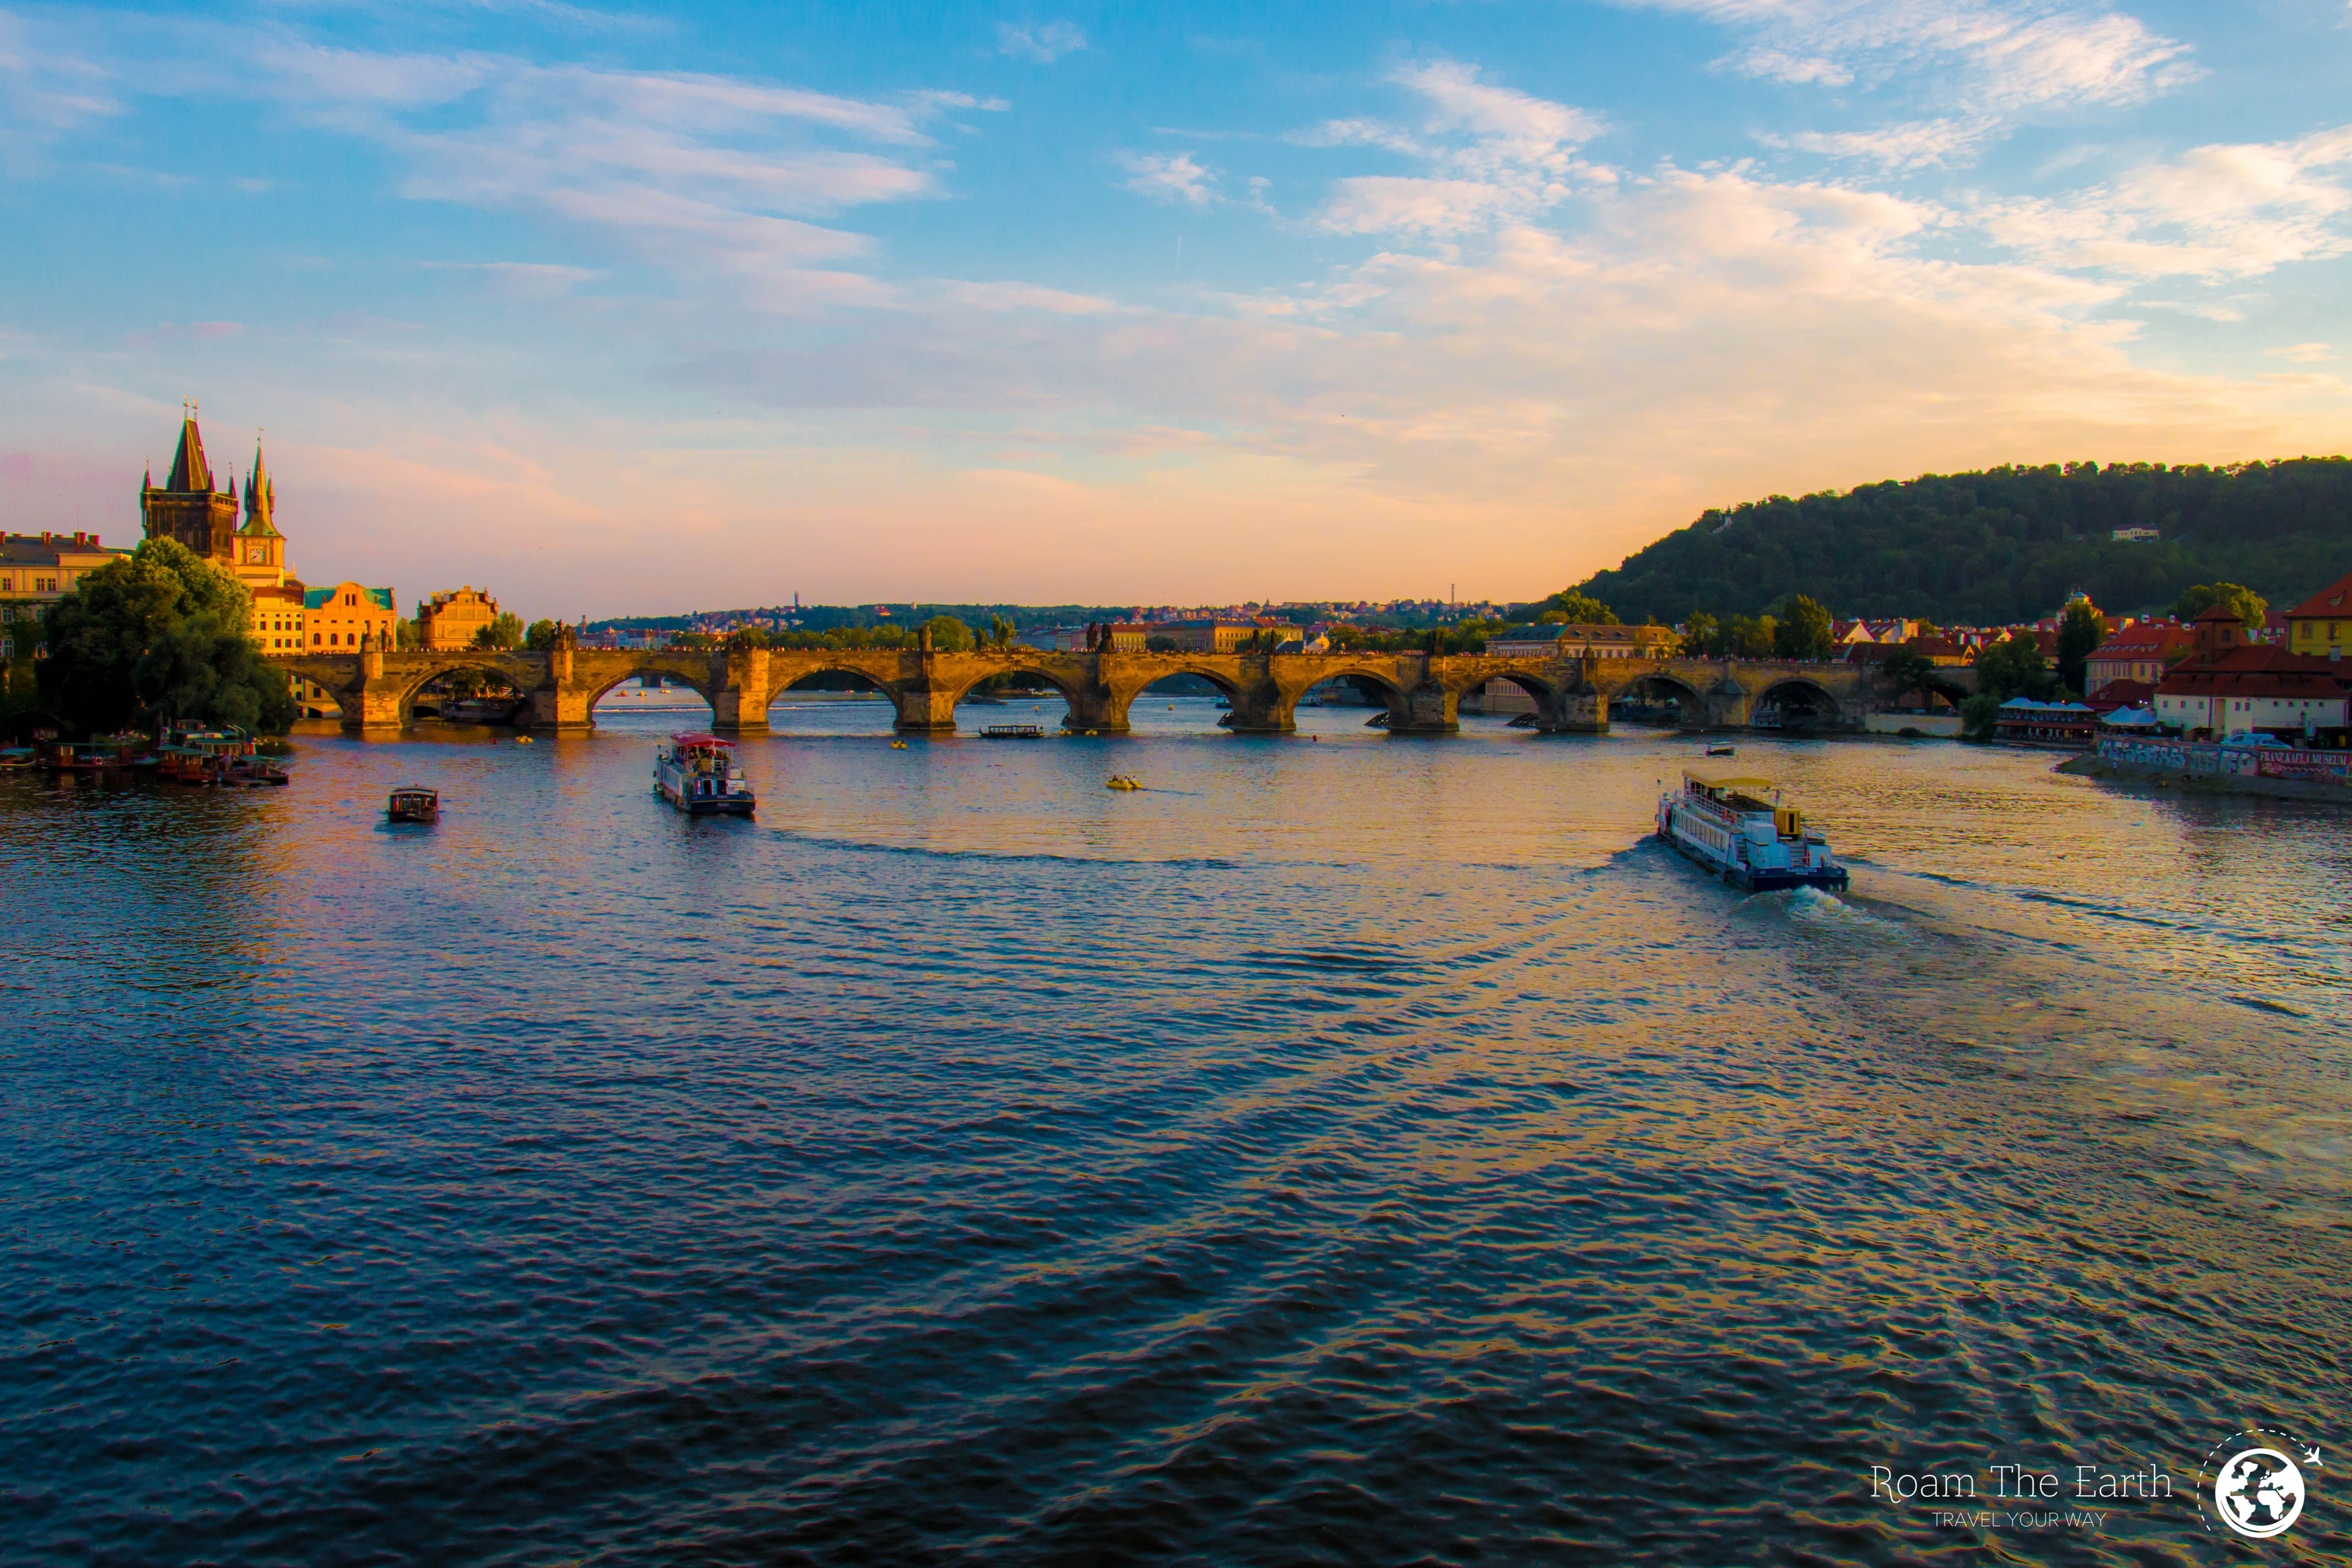 A stunning view across the Vltava river towards the Charles Bridge at sunset. A travel photo that encapsulates Prague at its finest! Travel to Prague, Czech Republic and give yourself the chance to soak in this amazing view and try some travel photography of your own!